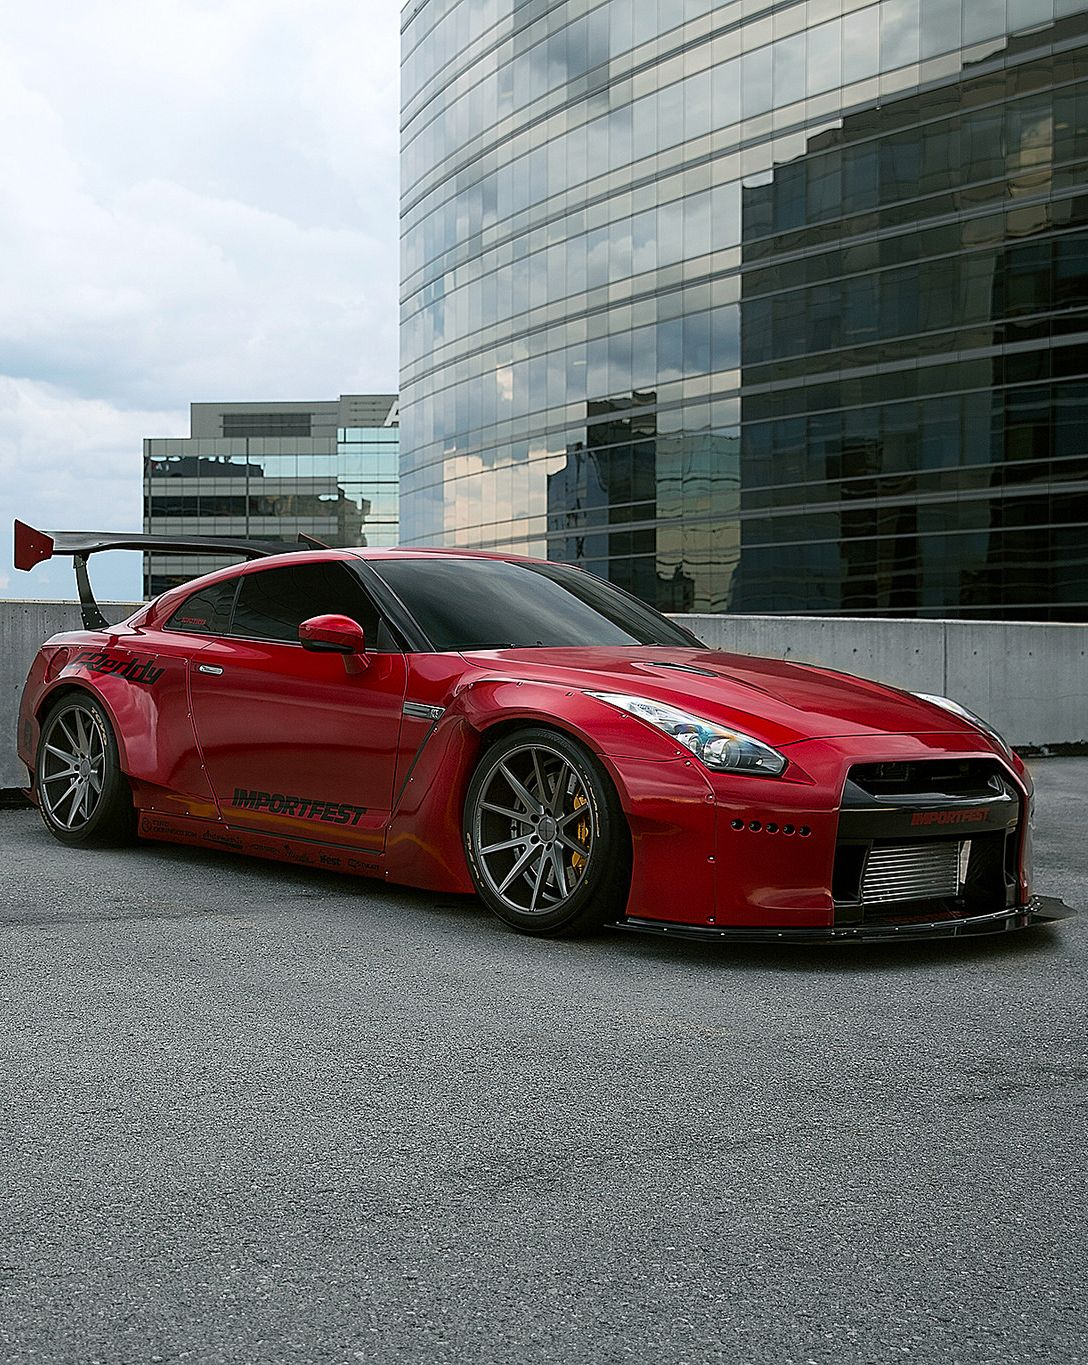 Nissan Gt R Black Supercar 4k Android Wallpaper: Red Rocket Bunny Nissan GT-R With VFS-1 Vossen Wheels